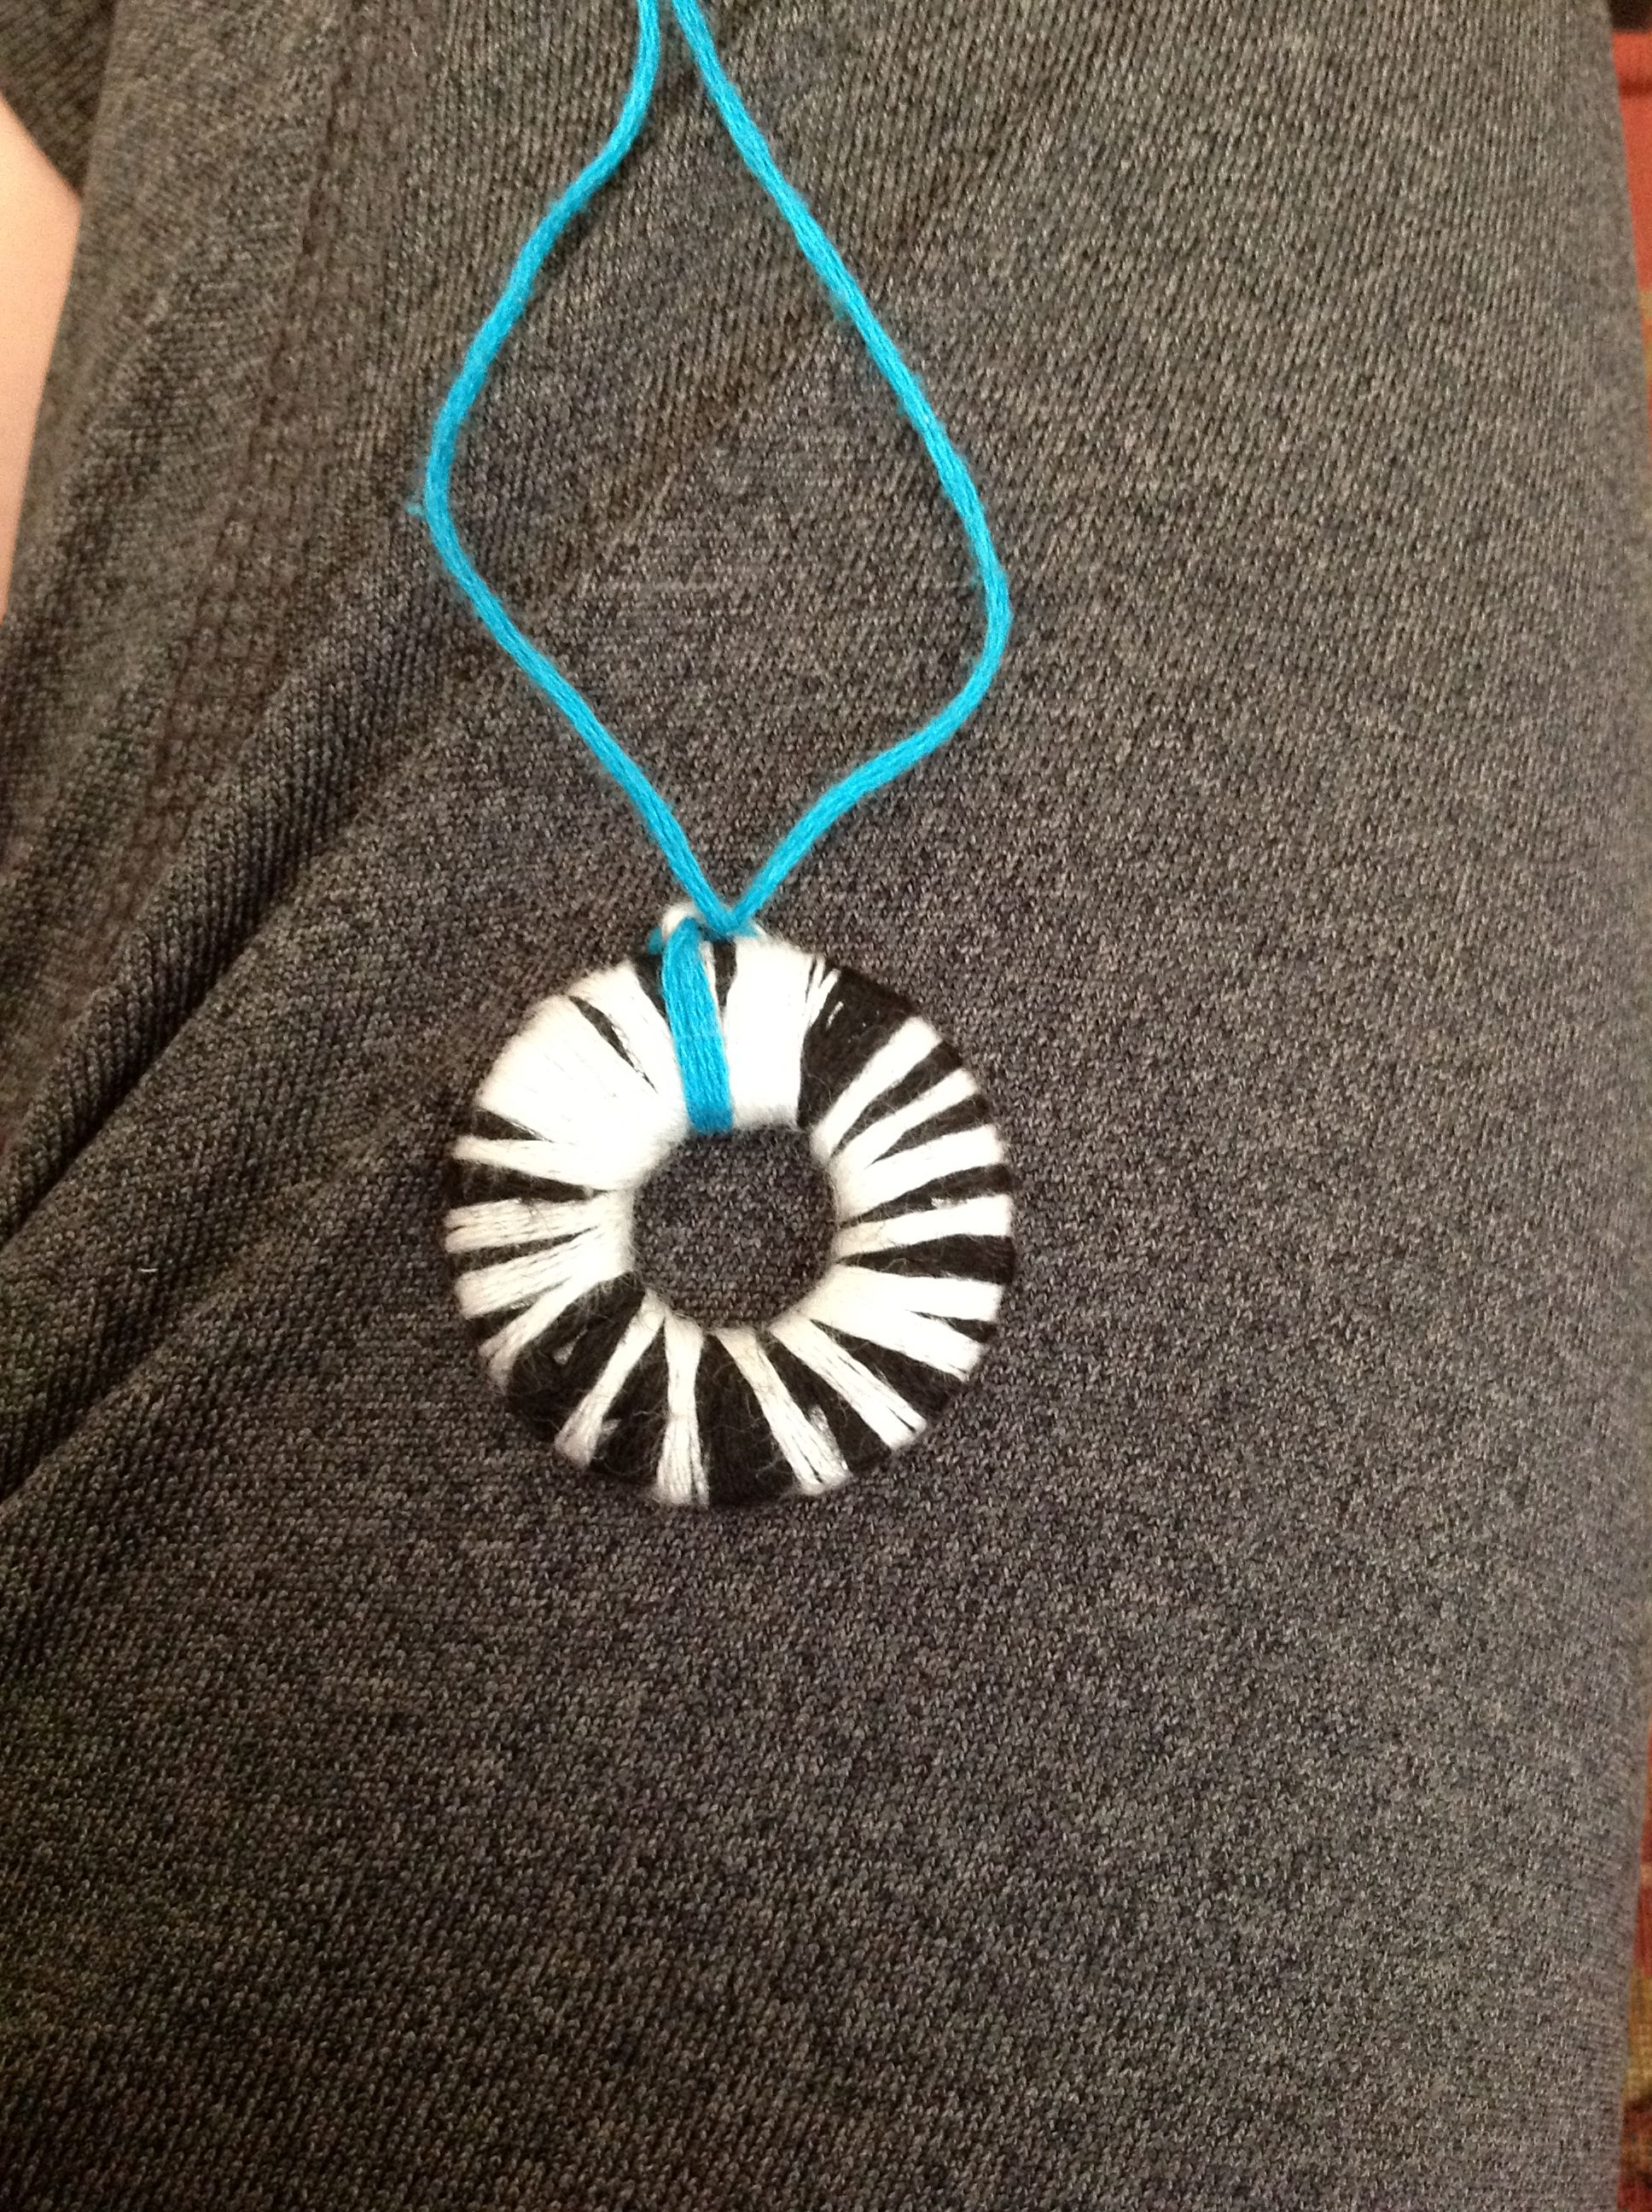 Me and my friend made these necklaces out of washers and thread! Super easy!